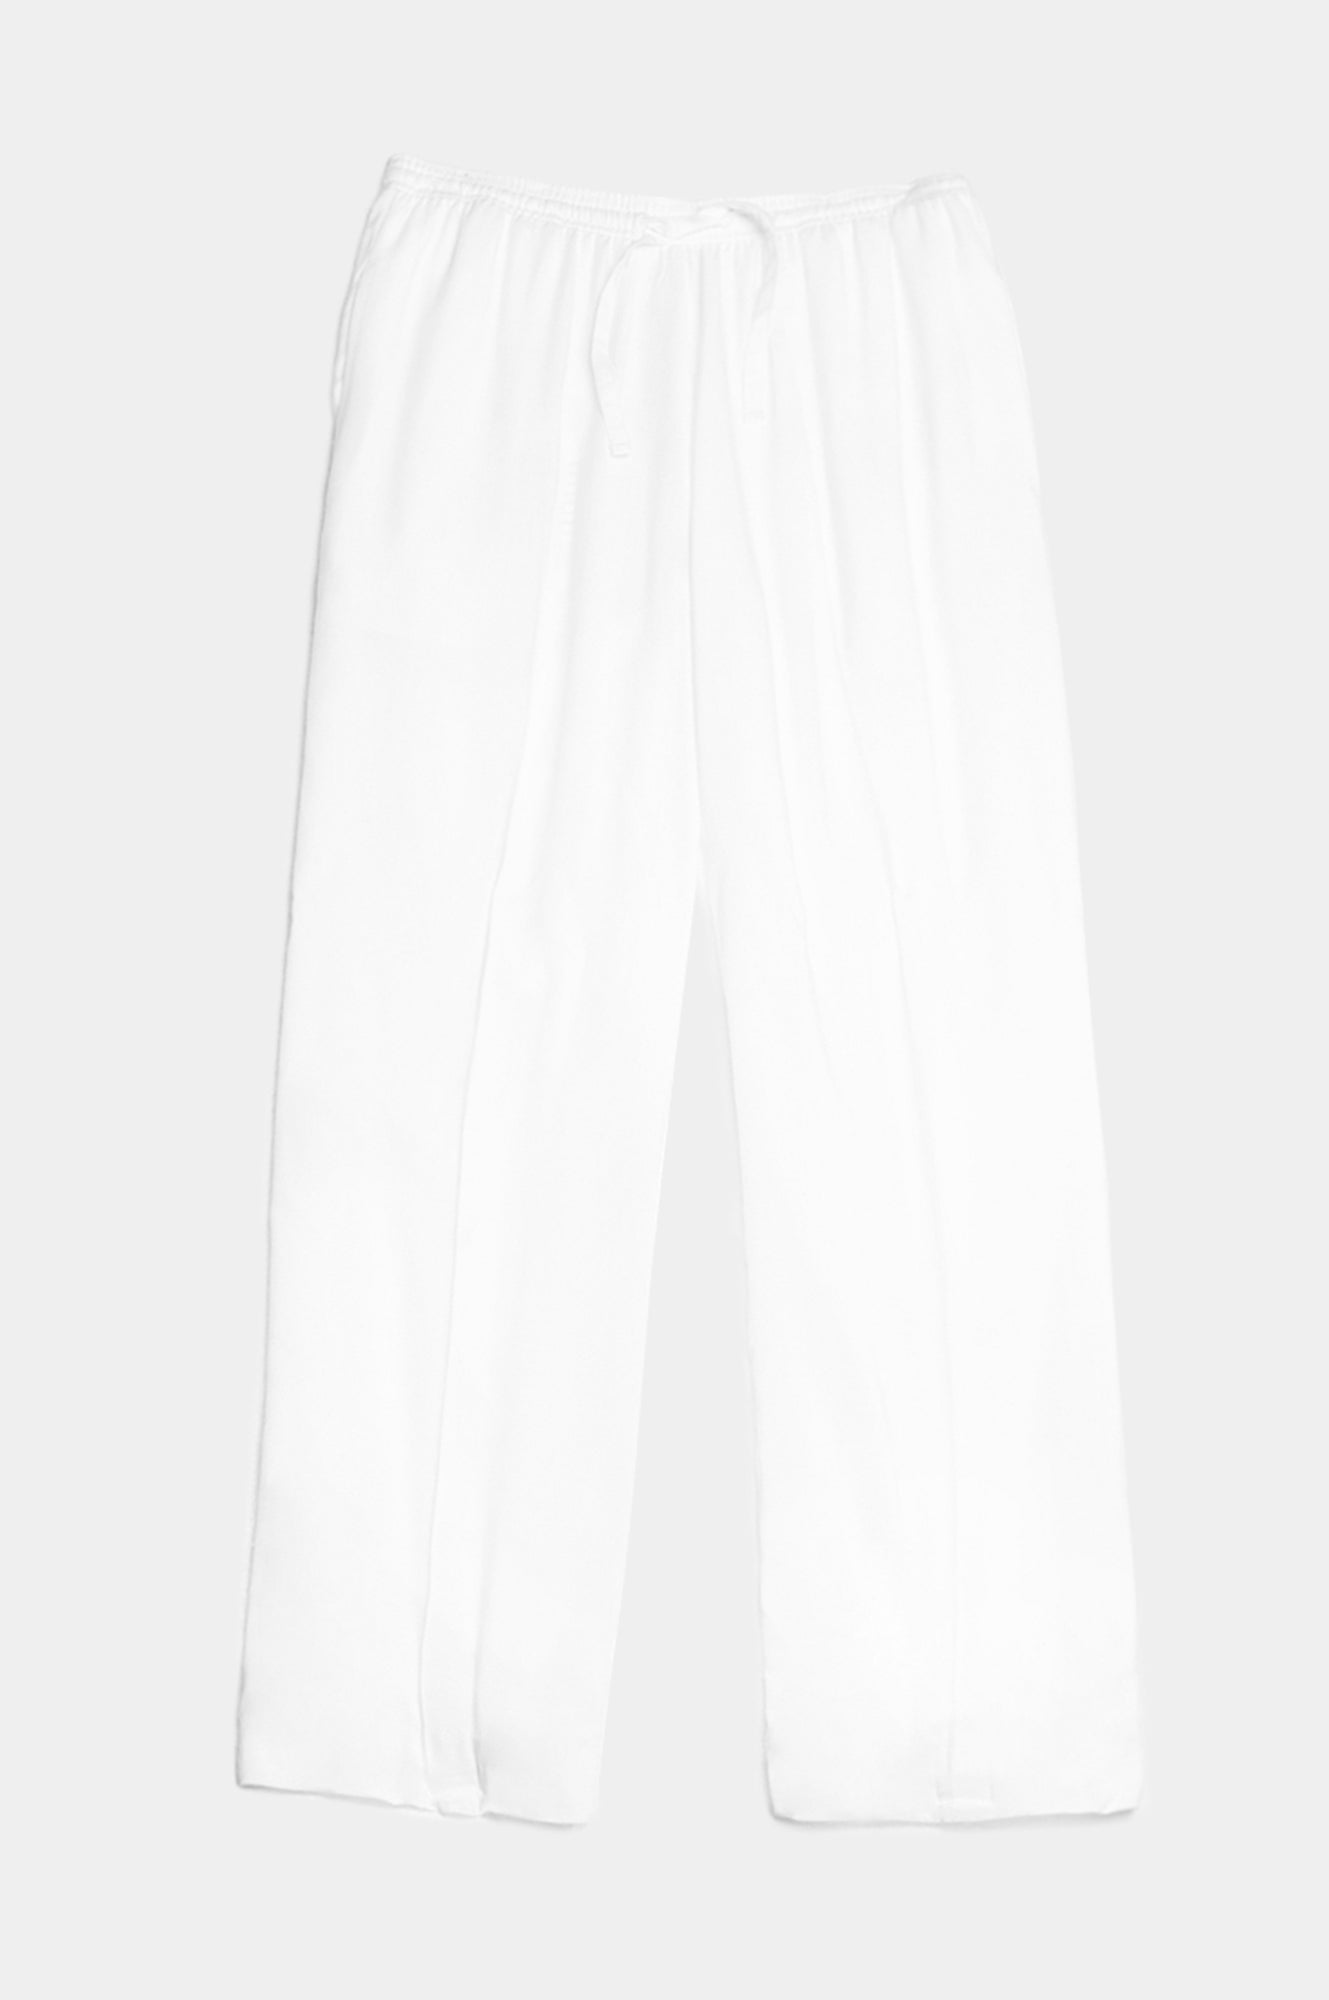 WHITE LOOSE FIT TROUSERS - Esteban Cortazar